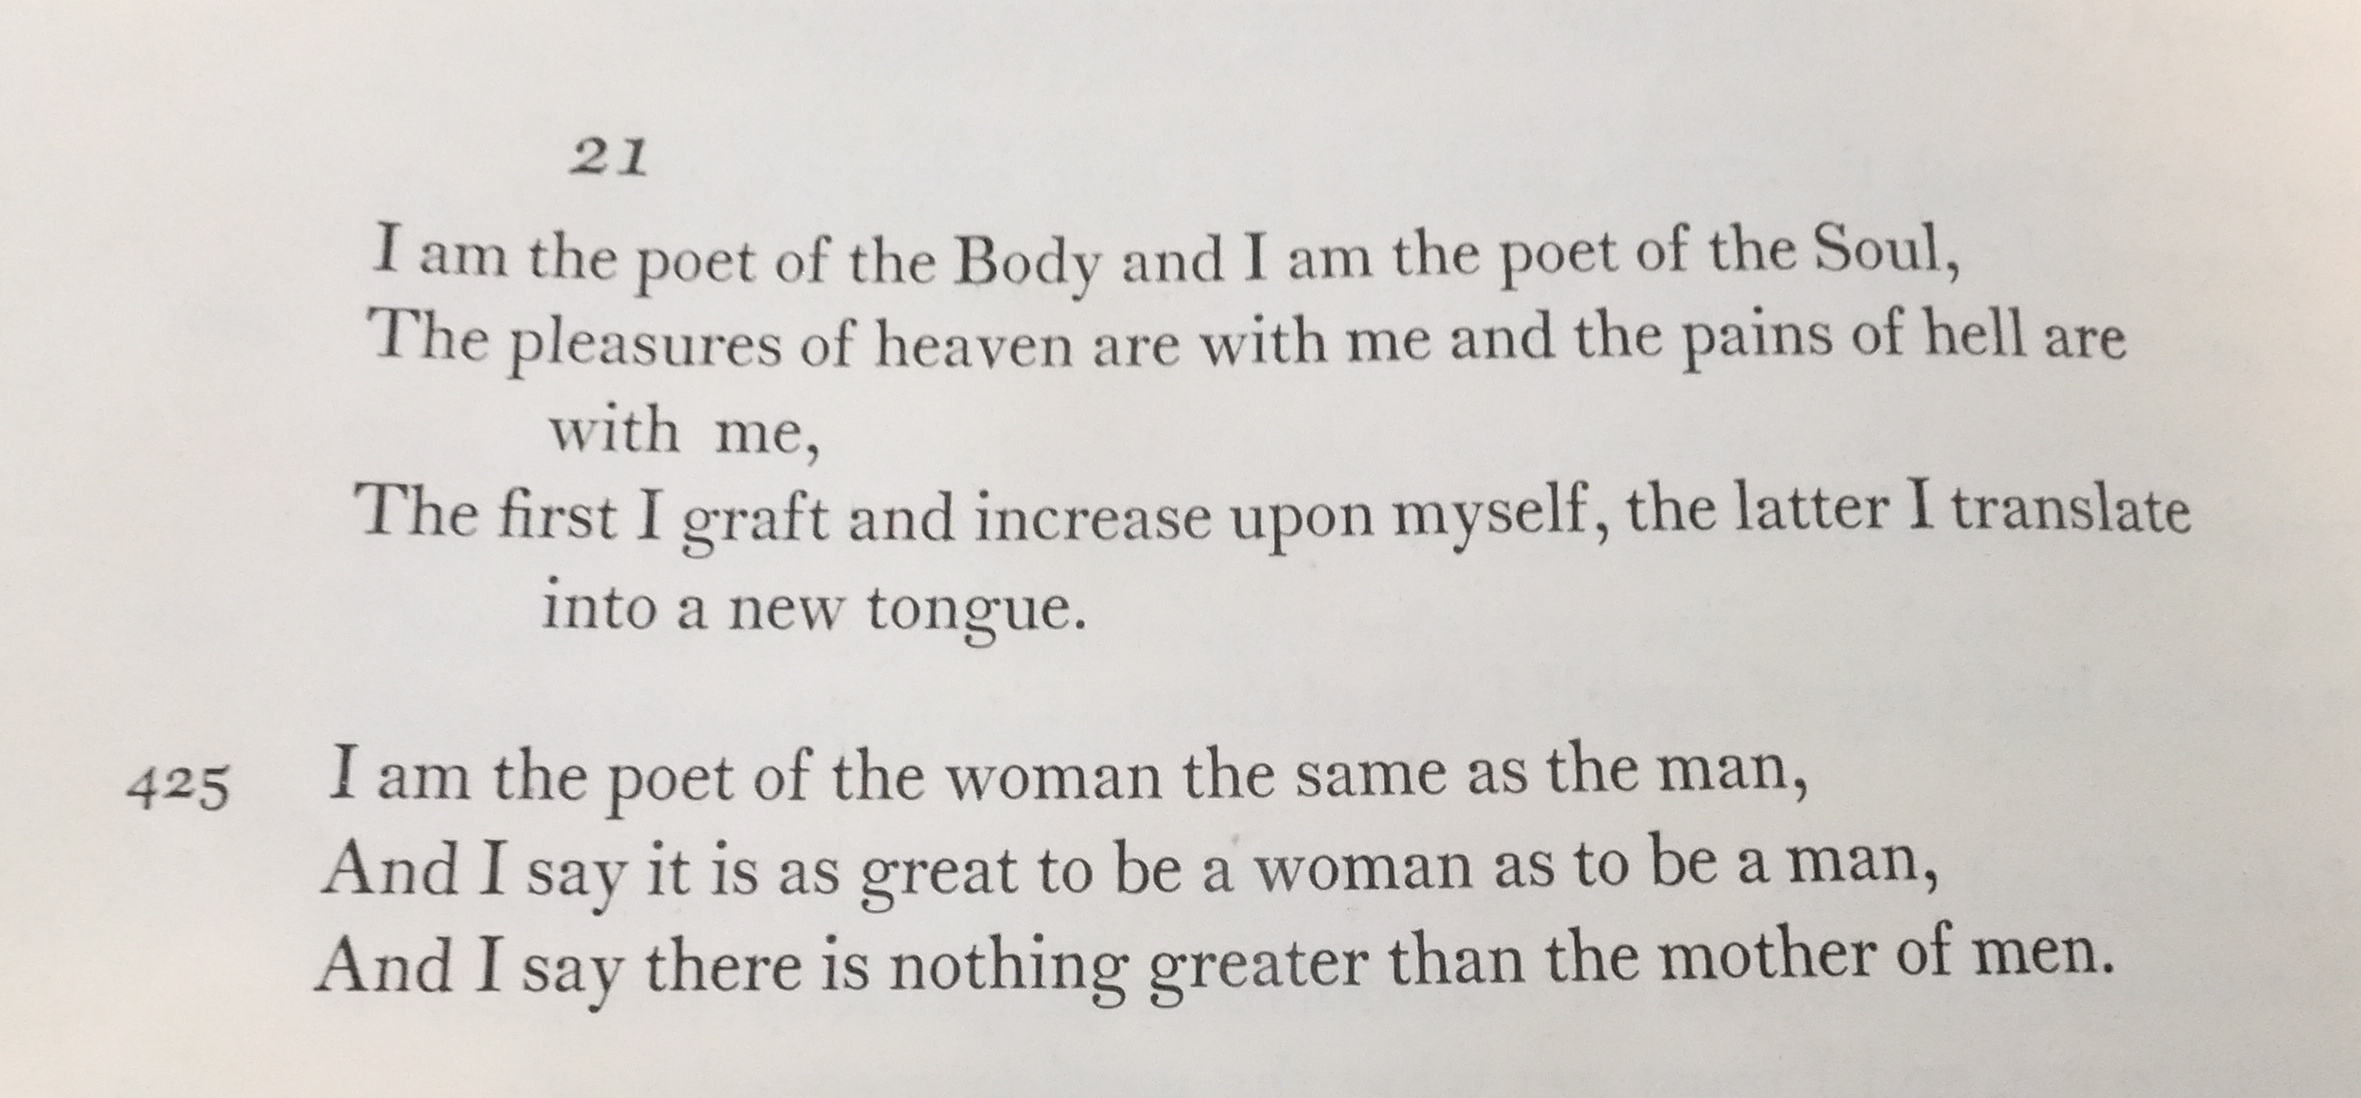 walt whitmans use of poetic elements in his writing There would be no shortage of praise for walt whitman but whitman and his poetry were not well-received by all his poetry was regarded by many as obscene.